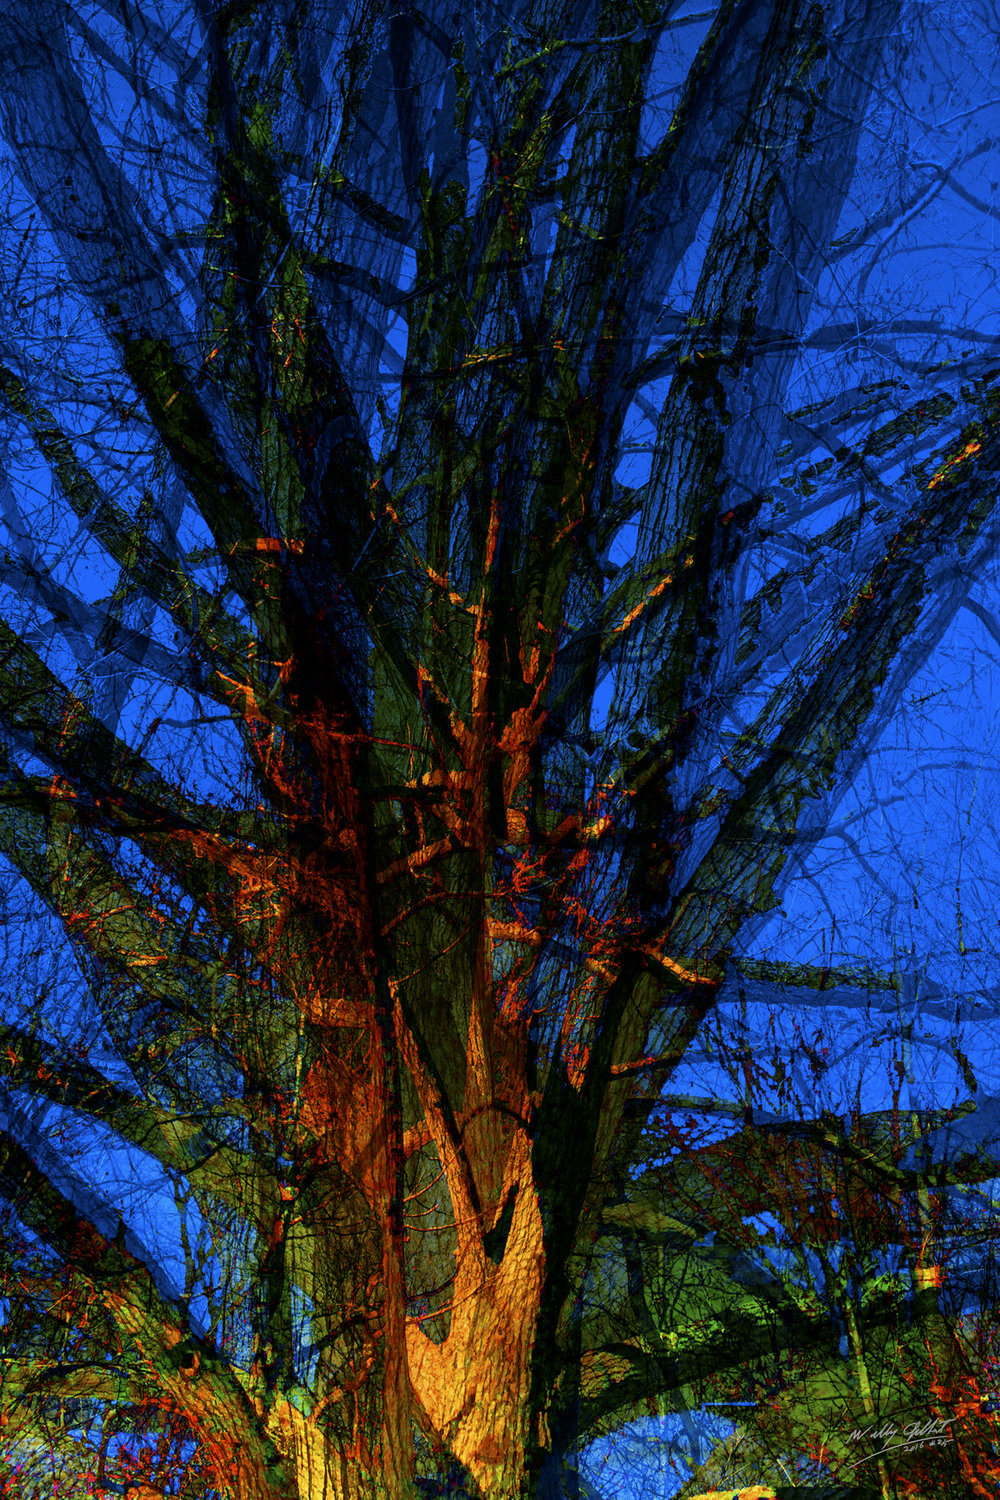 """Trees - Blue""  A 60"" x 40"" panel on a Flush Mount. Digital print on Aluminum with a high gloss finish."